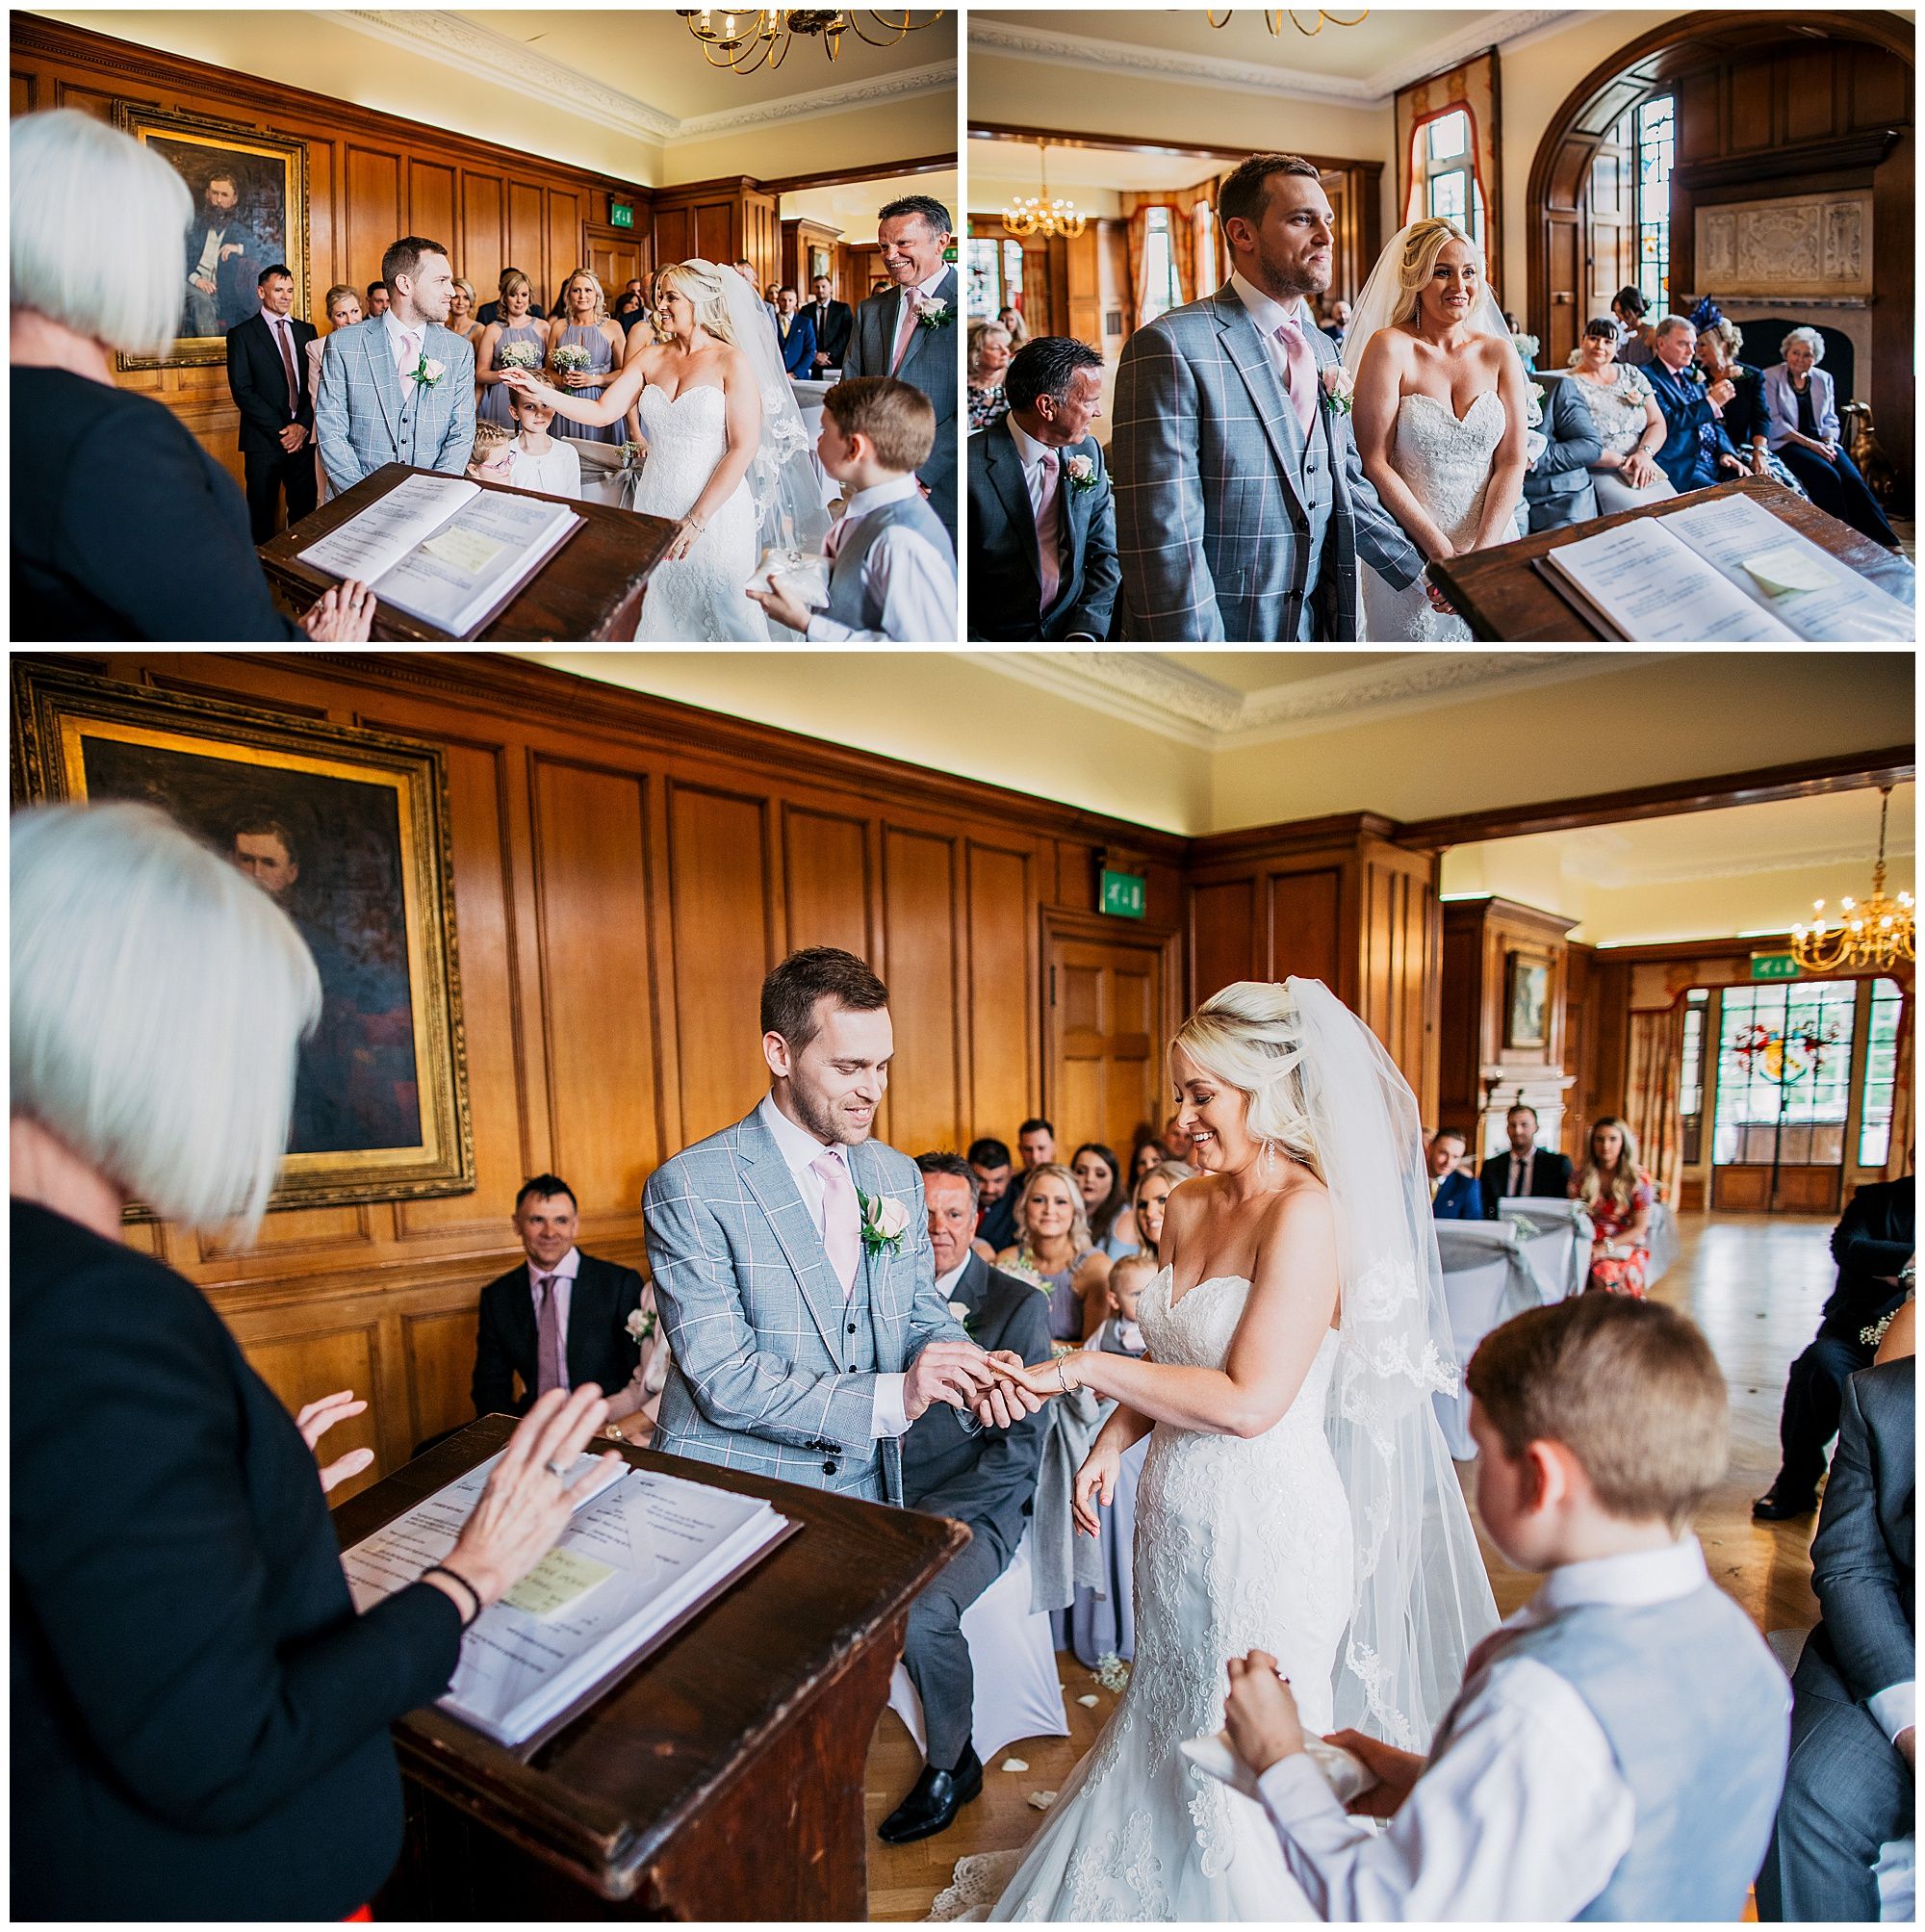 wedding ceremony at pennyhill park hotel and spa